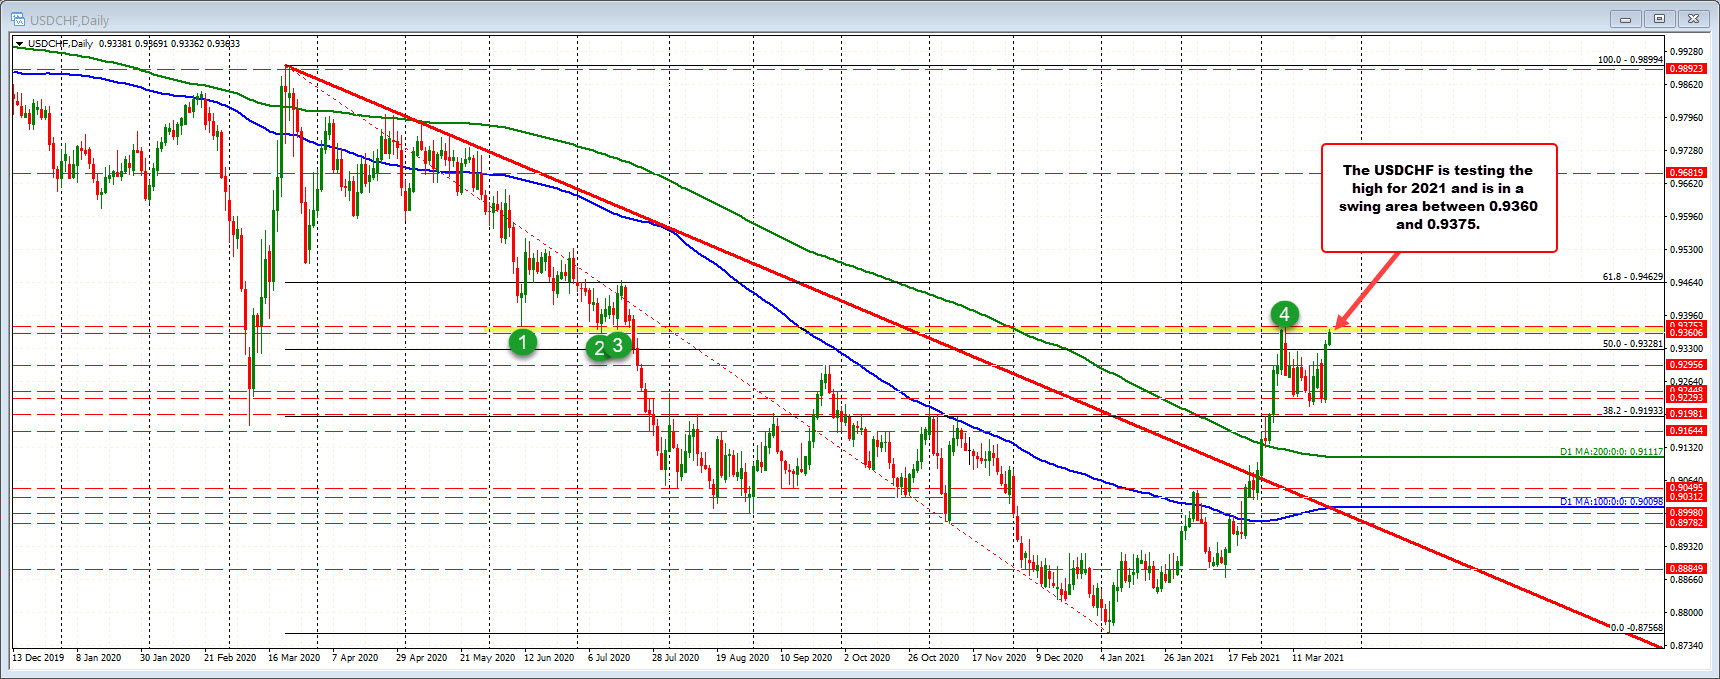 USDCHF on the 4-hour chart